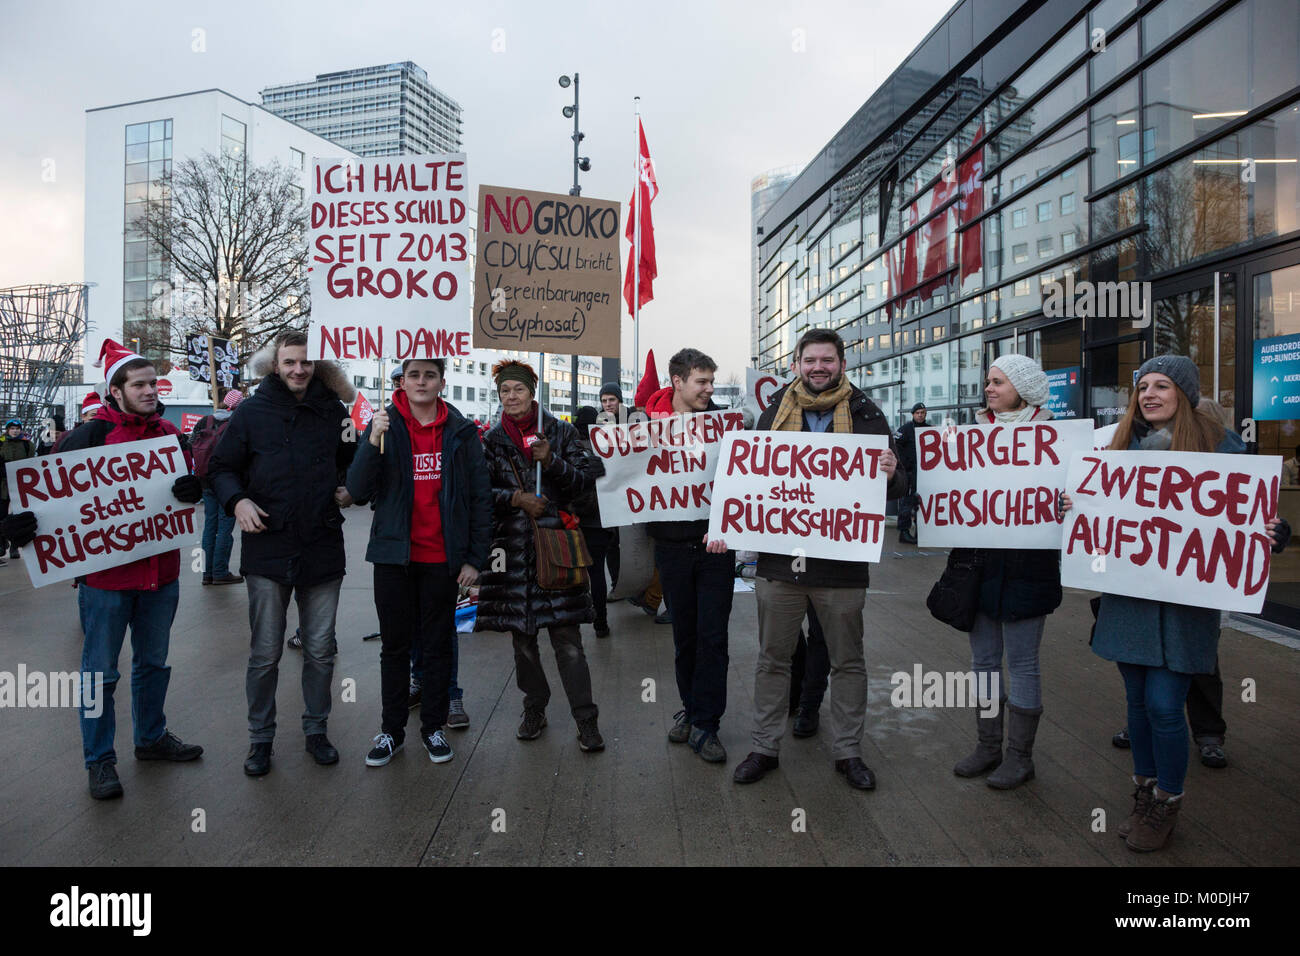 Bonn, Germany. 21 January 2018. Members of the SPD youth organisation Jusos (Young Socialists) protest against a - Stock Image